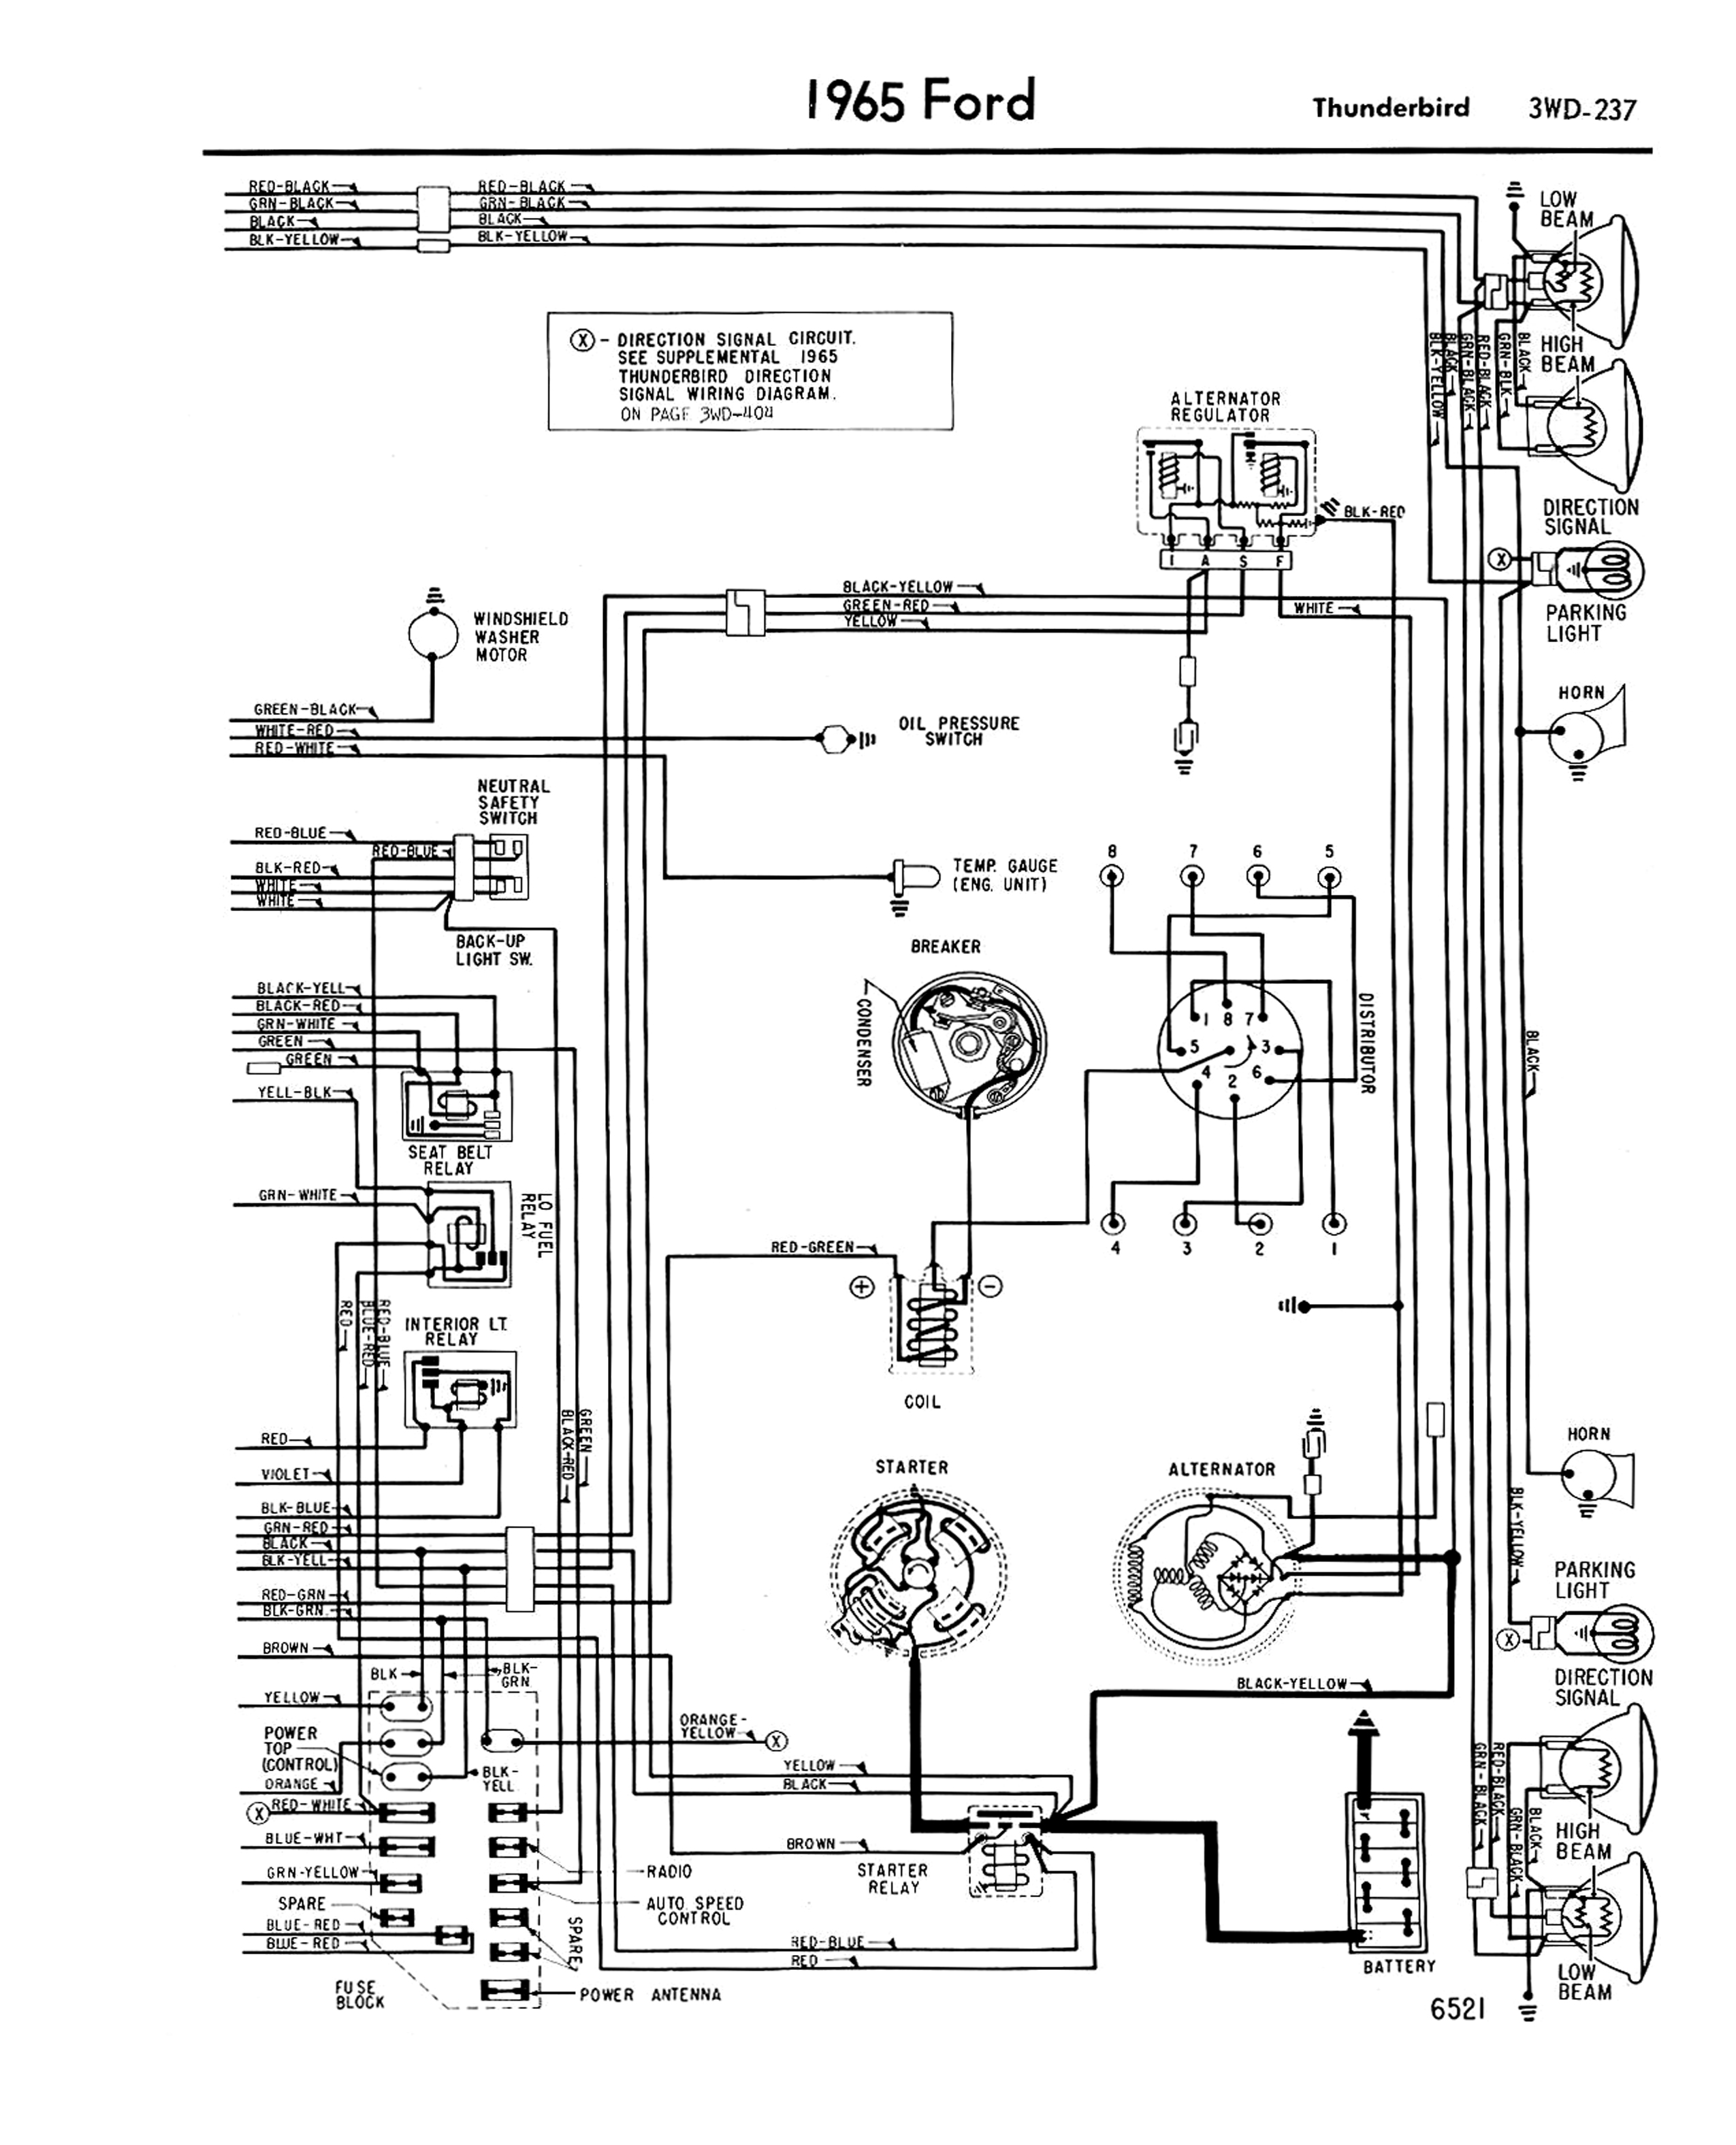 1960 Chevy Truck Wiring moreover 2ijb7 56 Ford I M Converting Vacuum Wipers Electric together with 1966 Mustang Radio Stereo Wiring moreover Ford And Edsel 1959 1960 Windows Wiring as well Catalog3. on 1959 ford thunderbird wiring diagrams